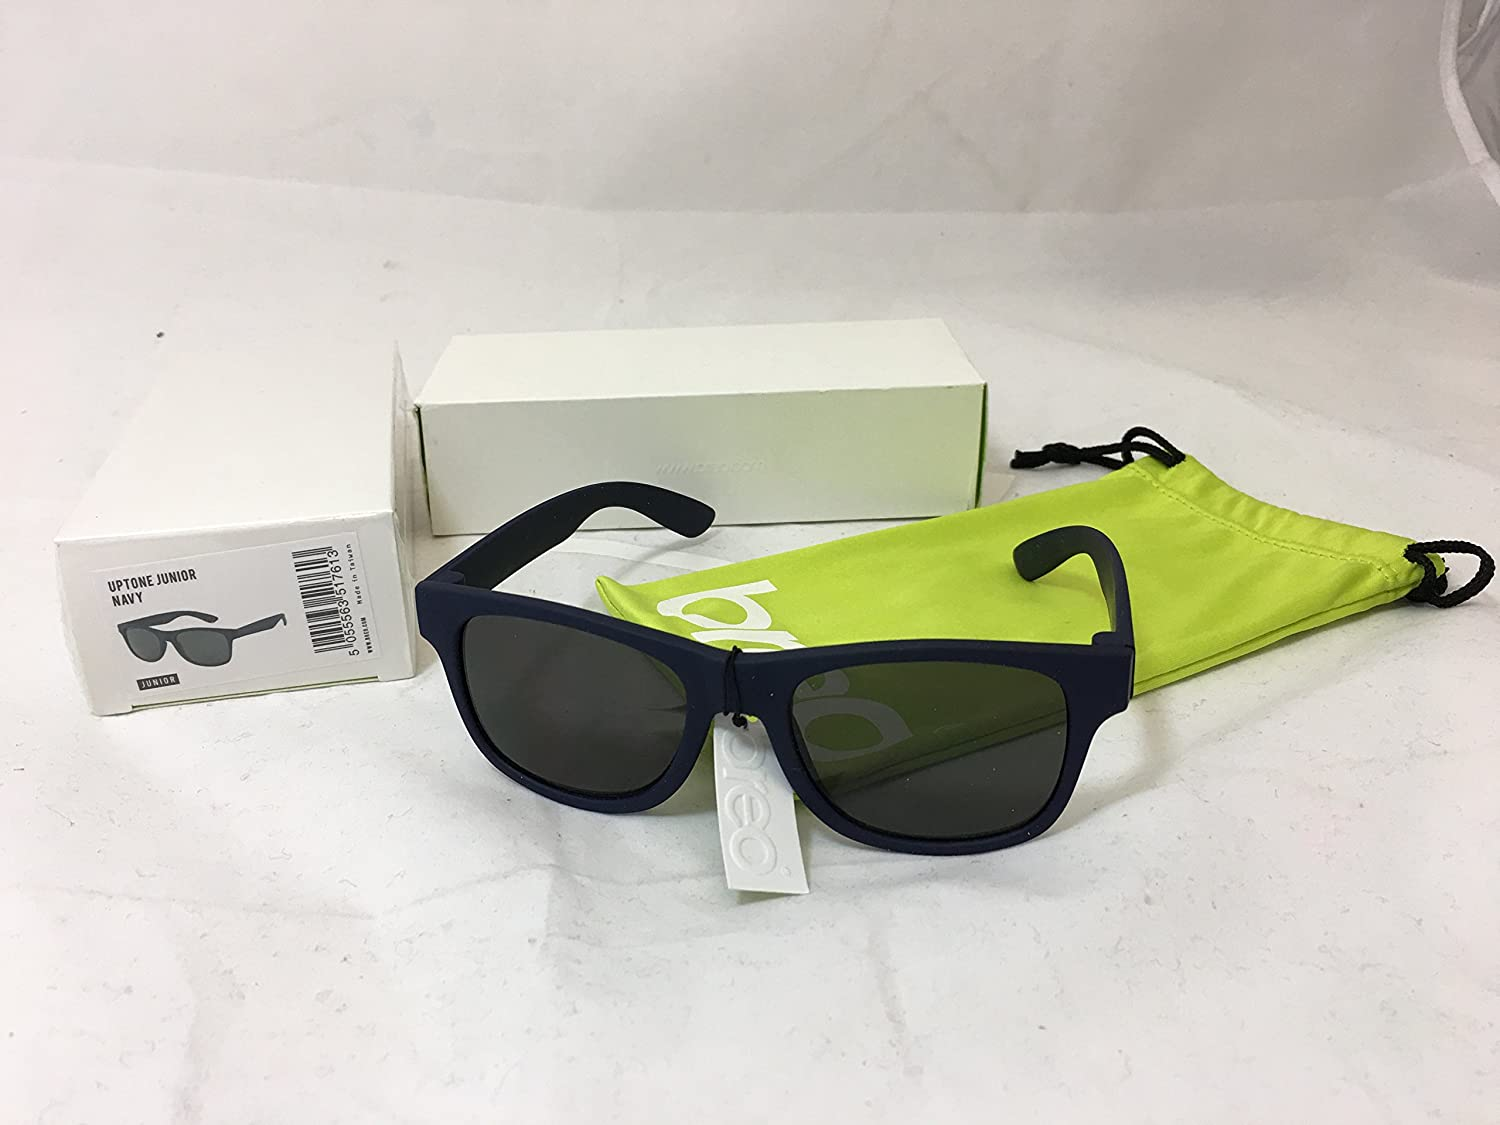 Breo Uptone Kids Childrens Navy Blue Sunglasses Full UV400 Sun Protection 100% UVA UVB